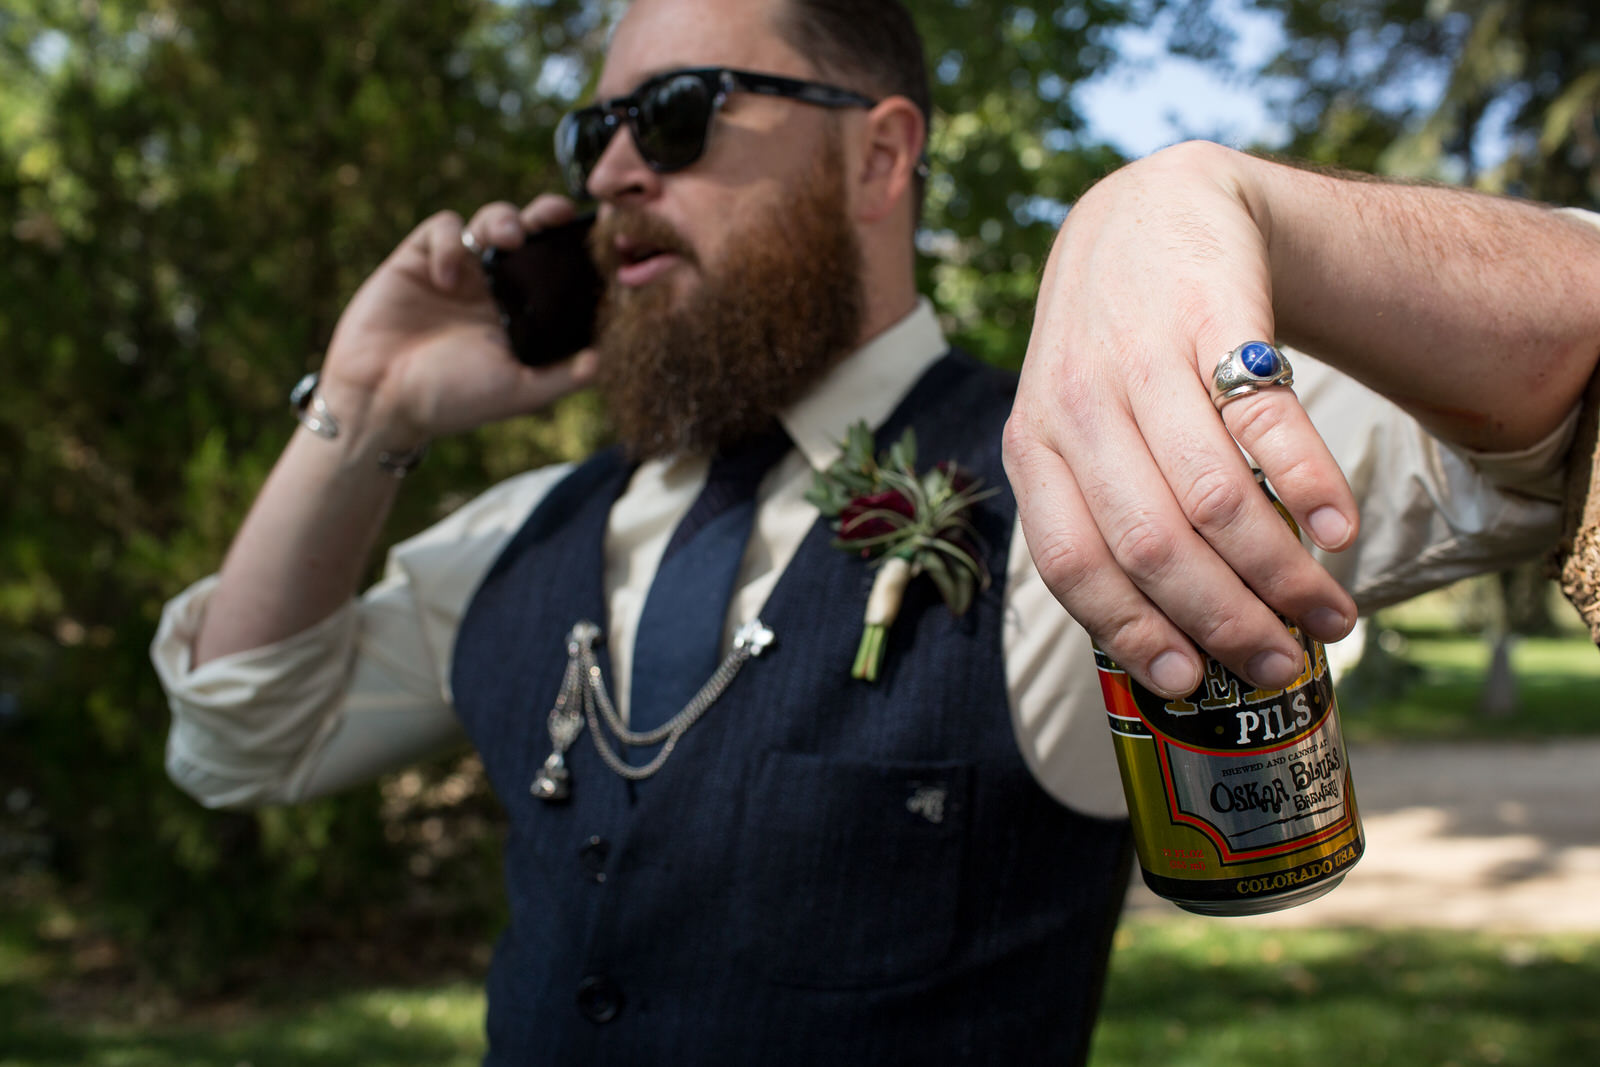 close up of groom's blue stone pinky ring sparkling in the sunlight as he holds a beer can and talks on the phone